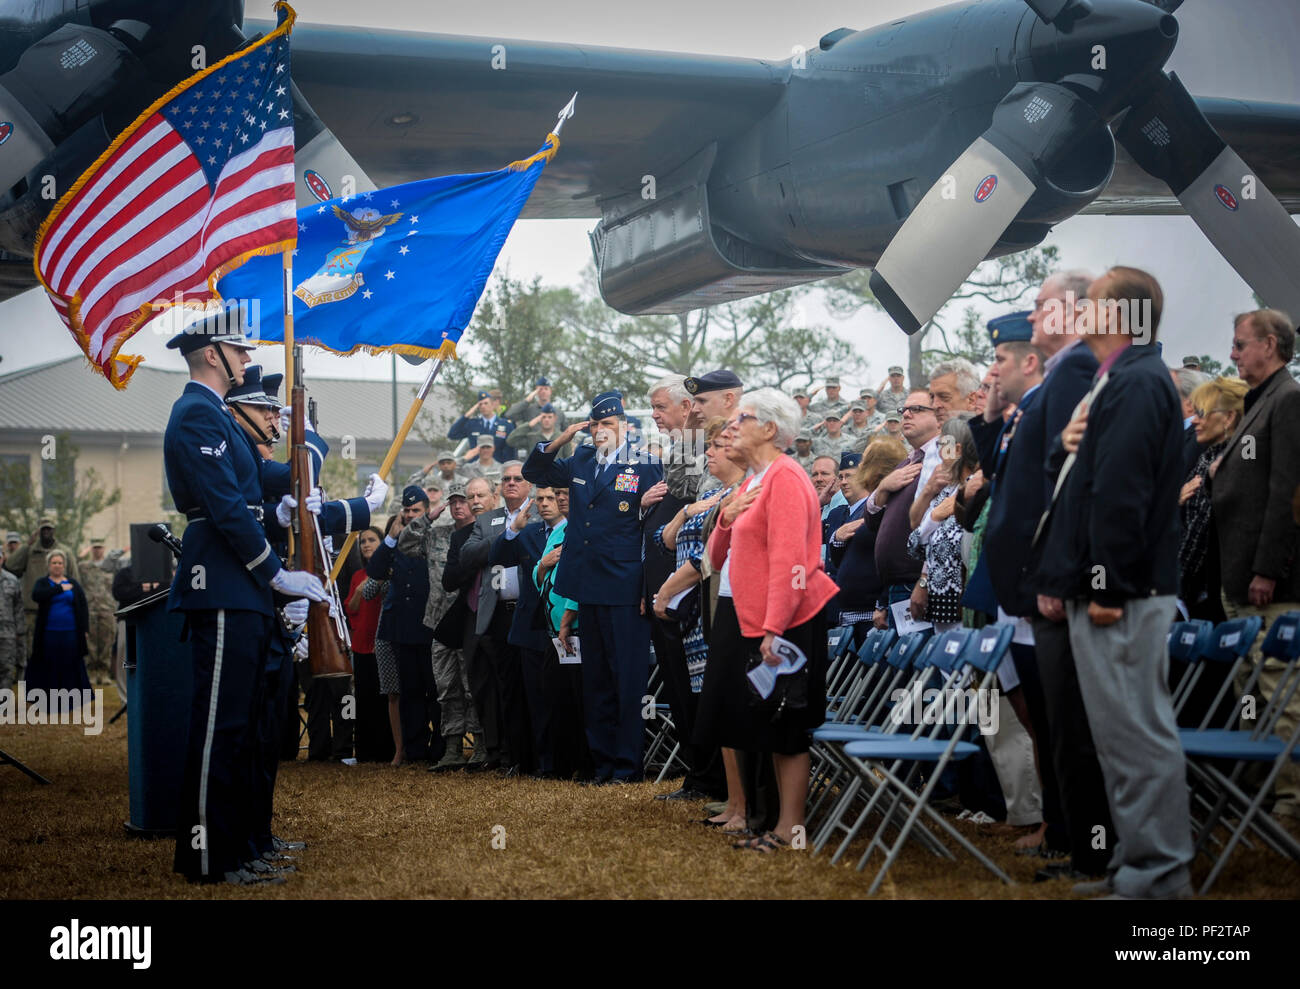 Hurlburt Field Base Honor Guard members present the colors before the AC-130H Spectre dedication ceremony at Hurlburt Field, Fla., Feb. 2, 2016. The Spectre played a role in operations all over the world, first in Vietnam, proceeding into the latter of the 20th century with operations Eagle Claw, Urgent Fury, Just Cause and Desert Storm. The last operational years of the AC-130H Spectre were spent flying combat missions in the Balkans and Somalia, and in Afghanistan in support of Operation Enduring Freedom. (U.S. Air Force photo by Senior Airman Meagan Schutter) - Stock Image